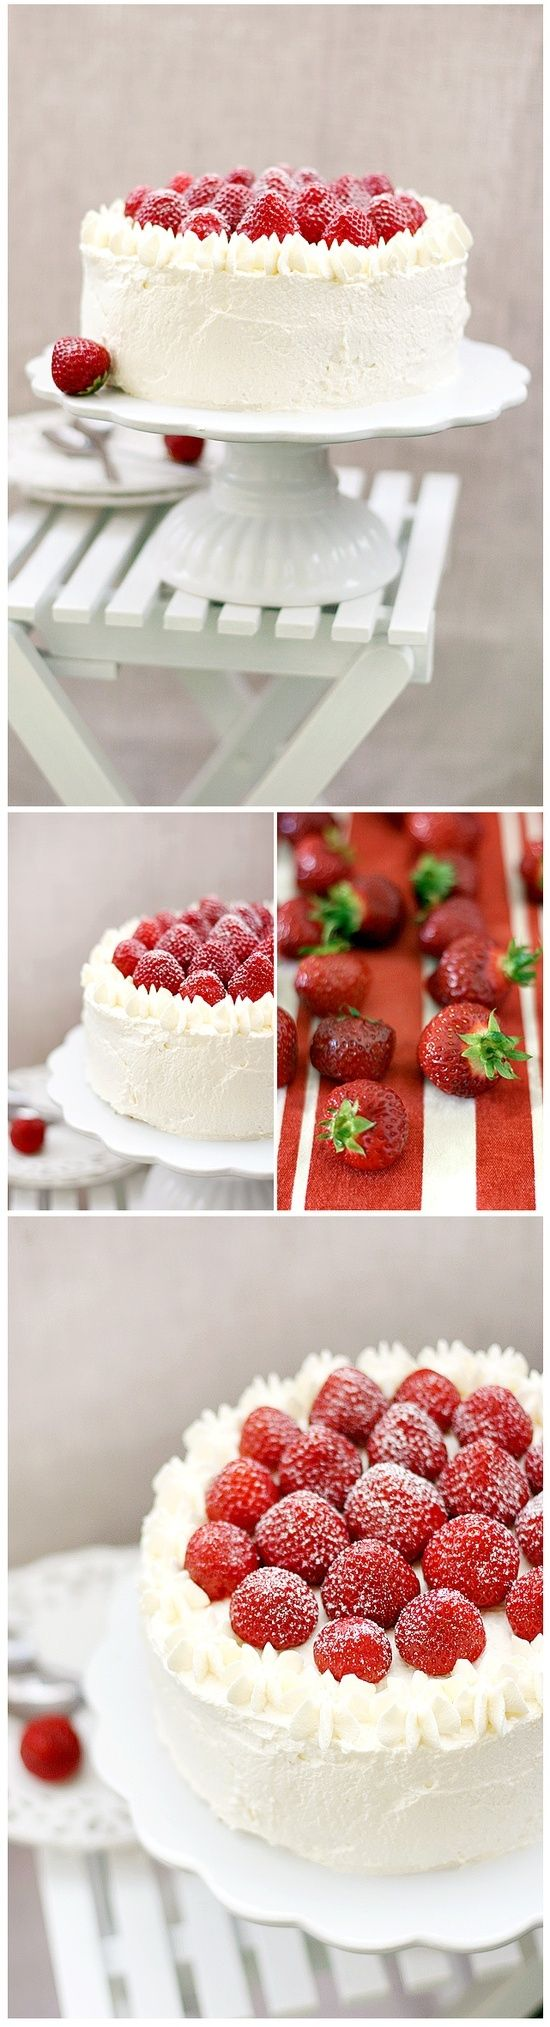 strawberry cake...by Call Me Cupcake by isra